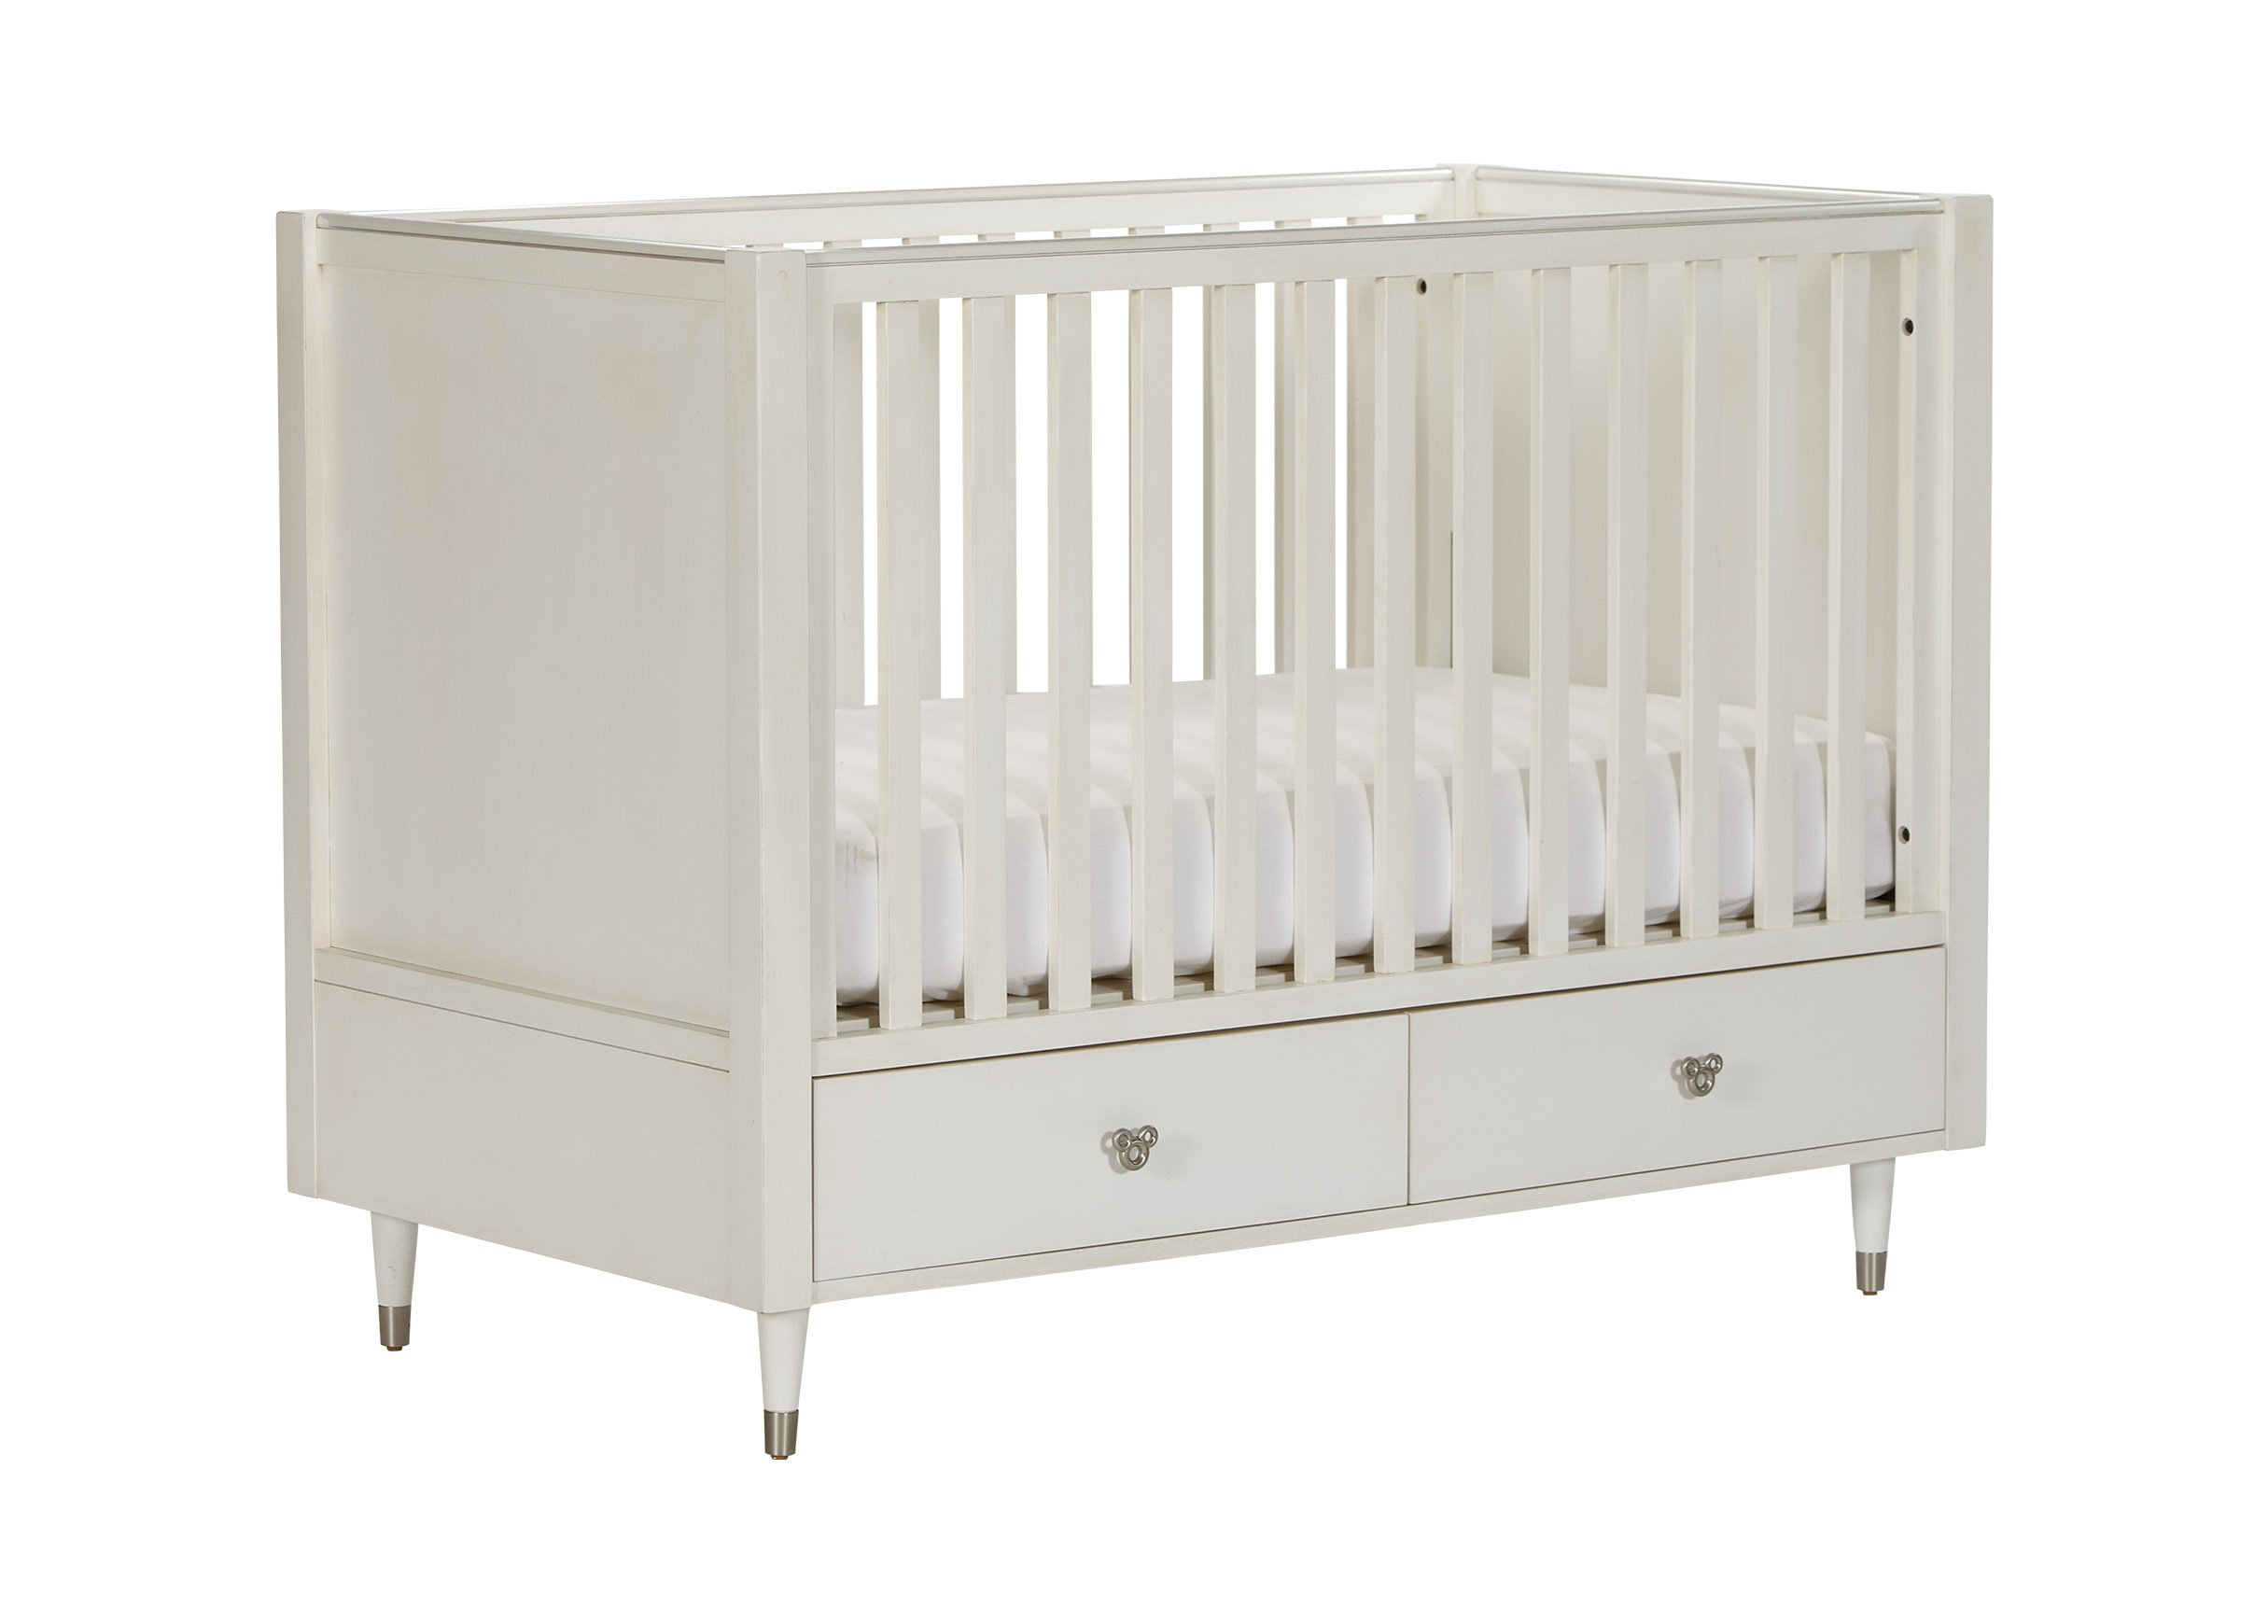 Ethan allen crib for sale - Images Carolwood Crib Large_gray